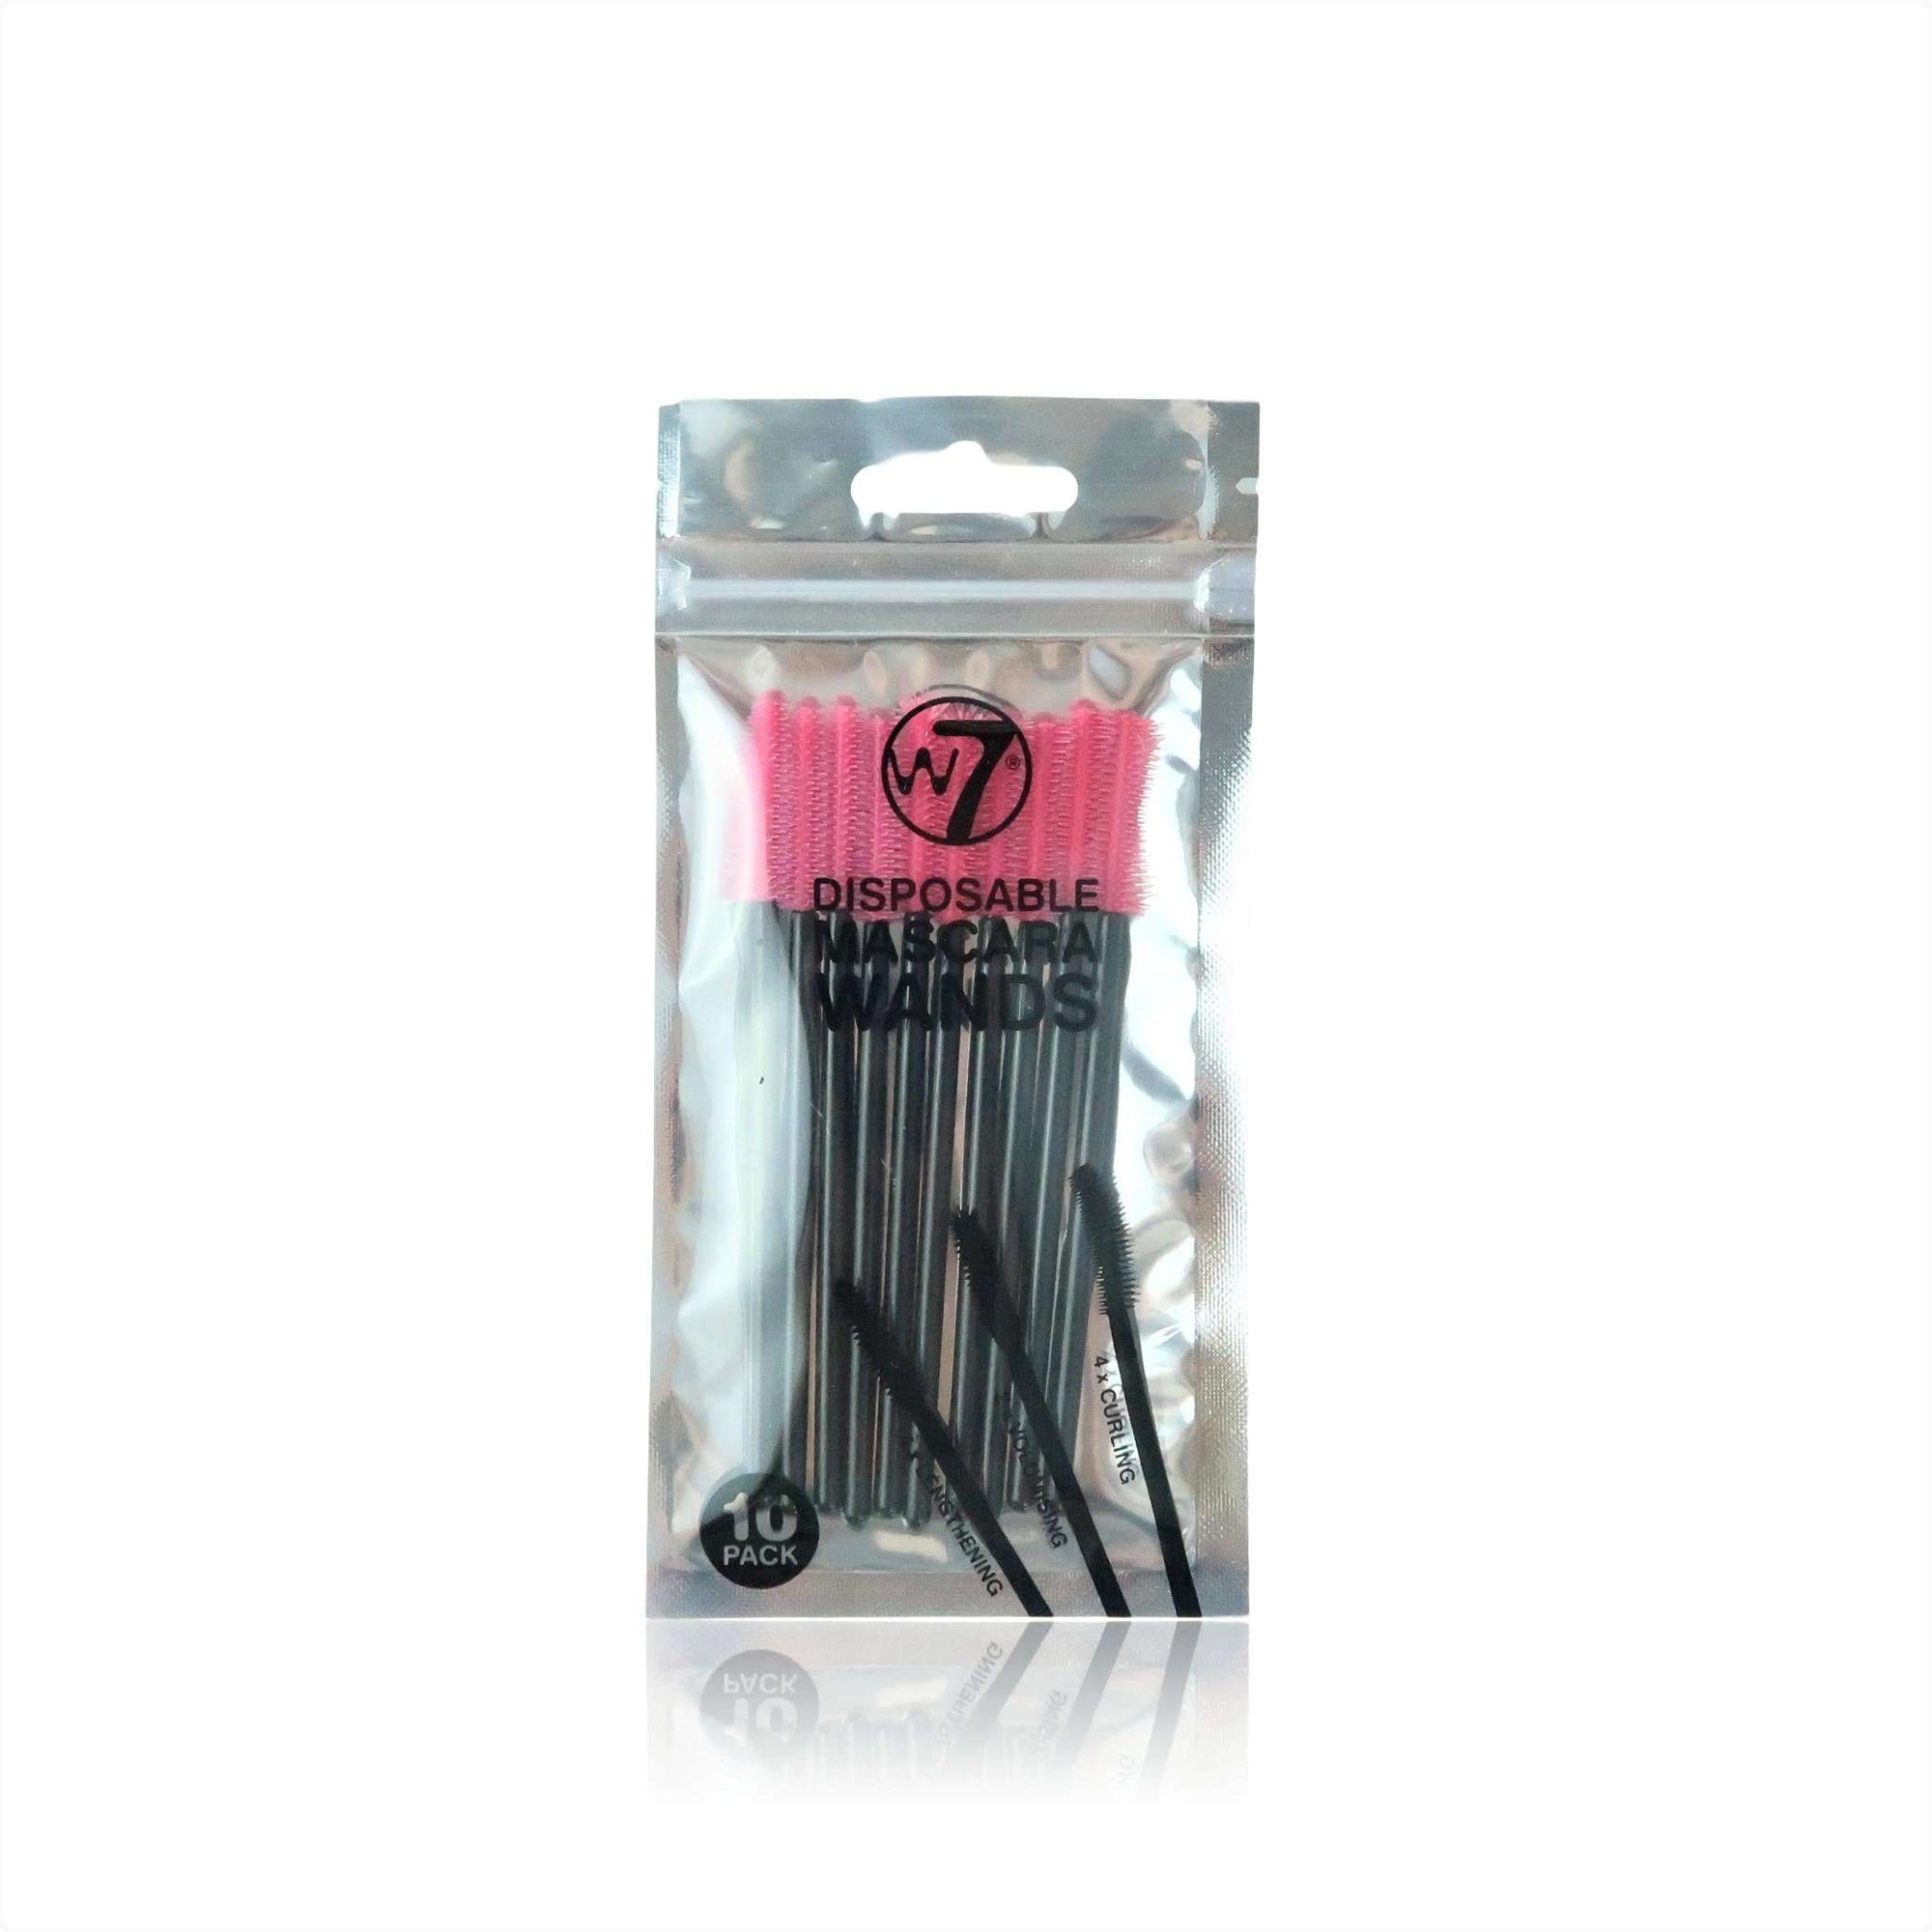 W7 Disposable Mascara Wands